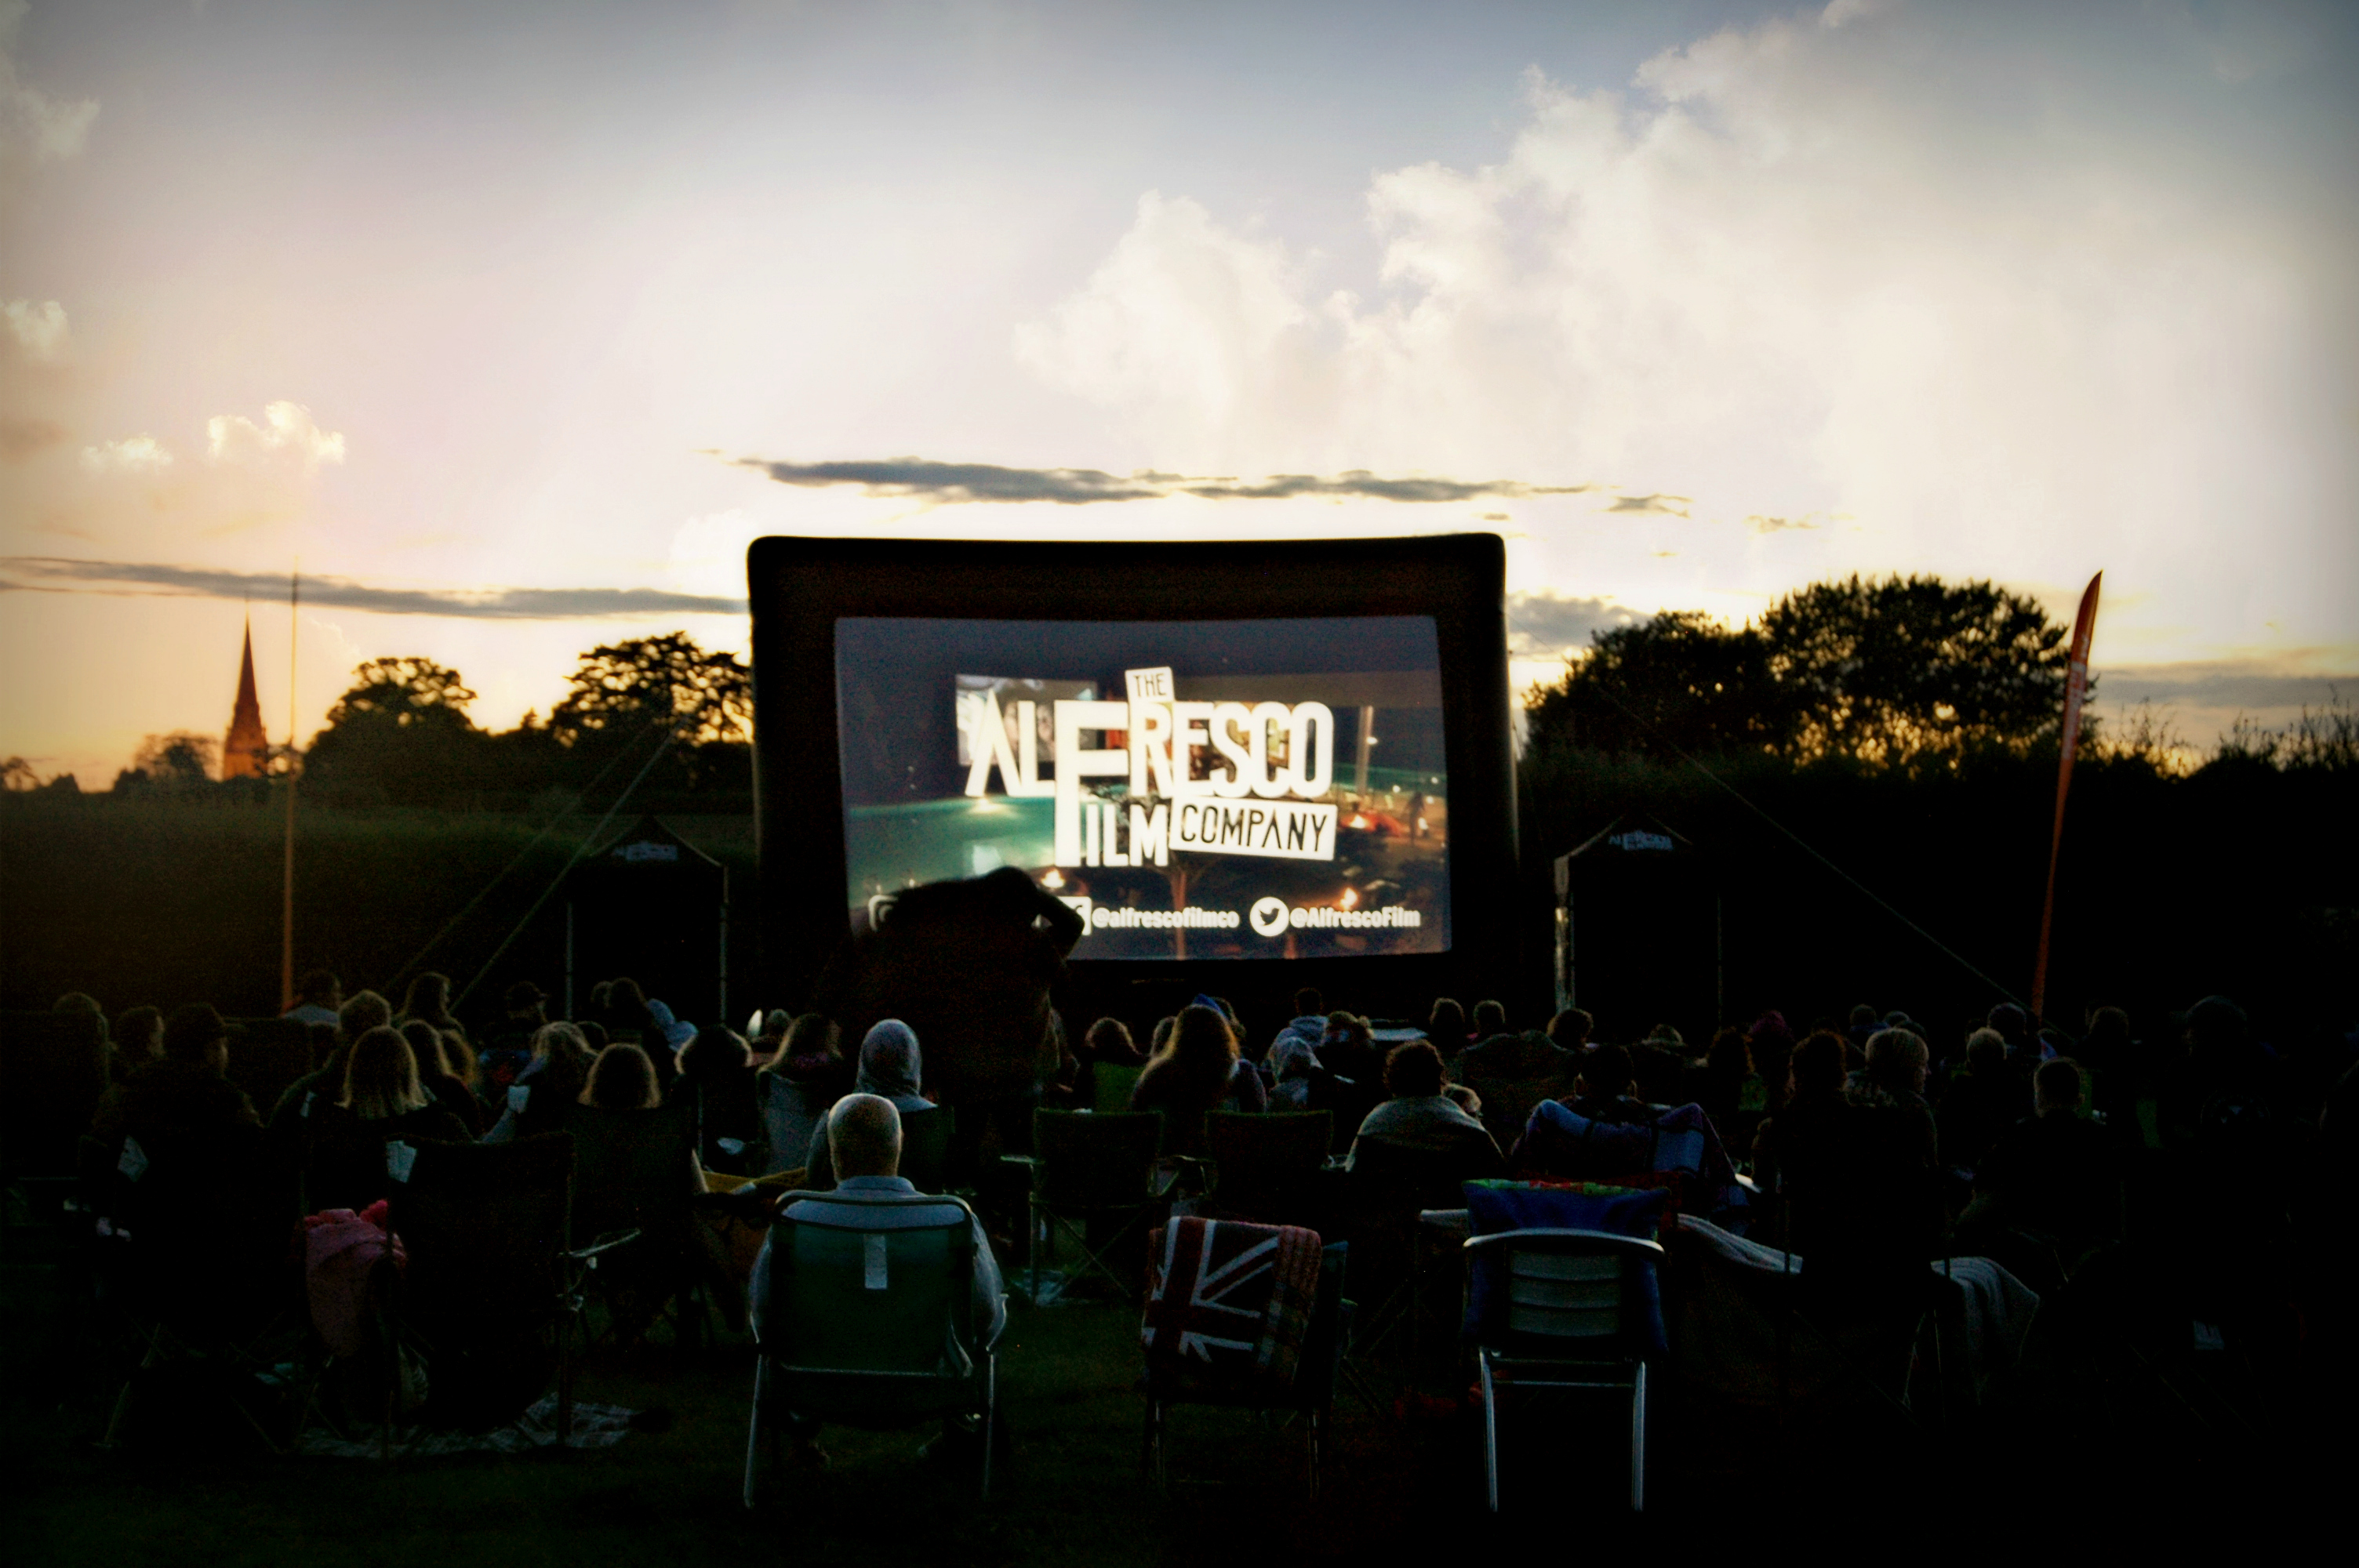 The Alfresco Film Company outdoor cinema night at Over Farm